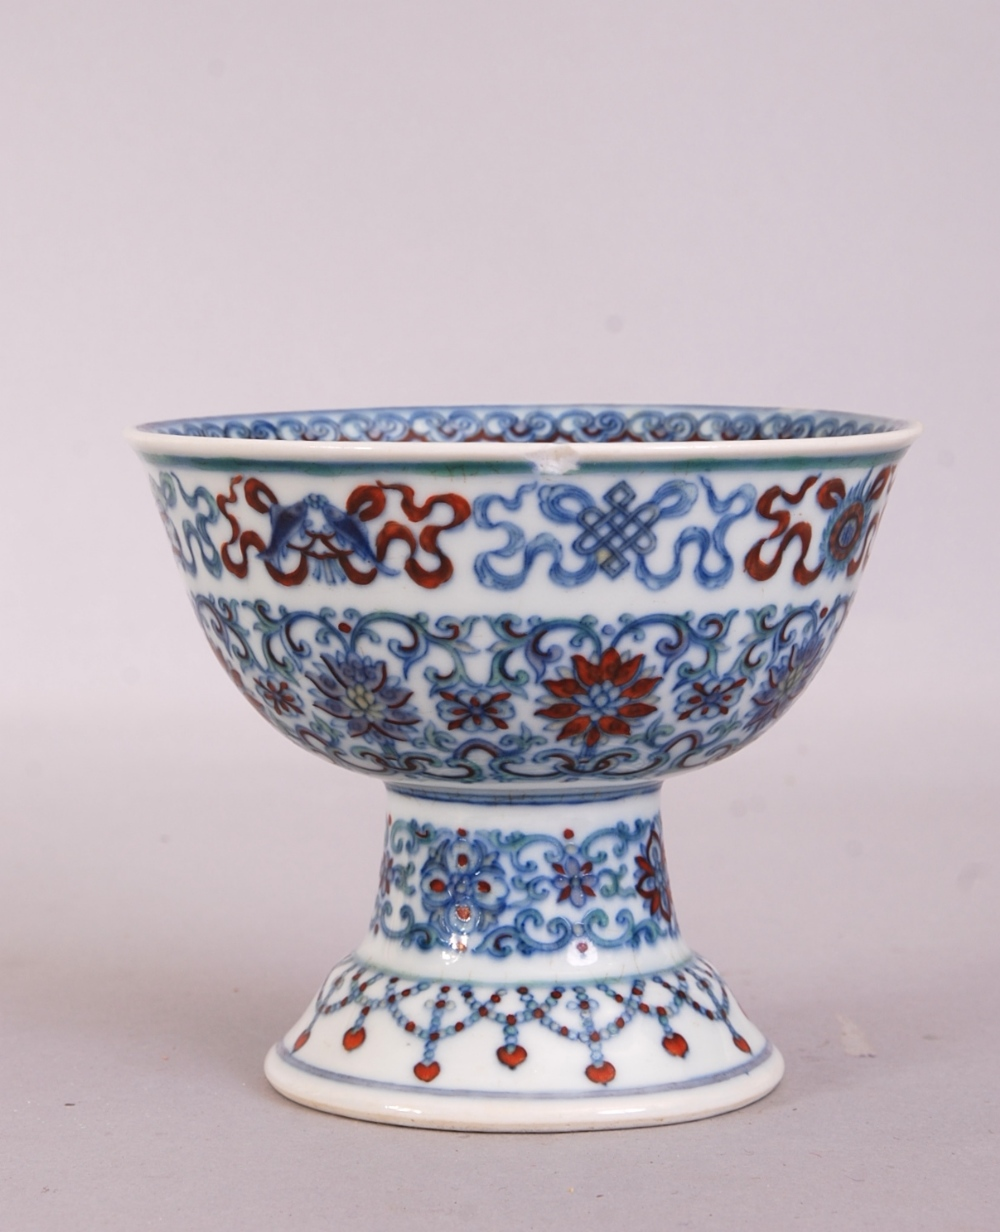 Lot 7 - C18th Chinese Doucai stem bowl, painted to the exterior with scrolling lotus flowers and the Eight